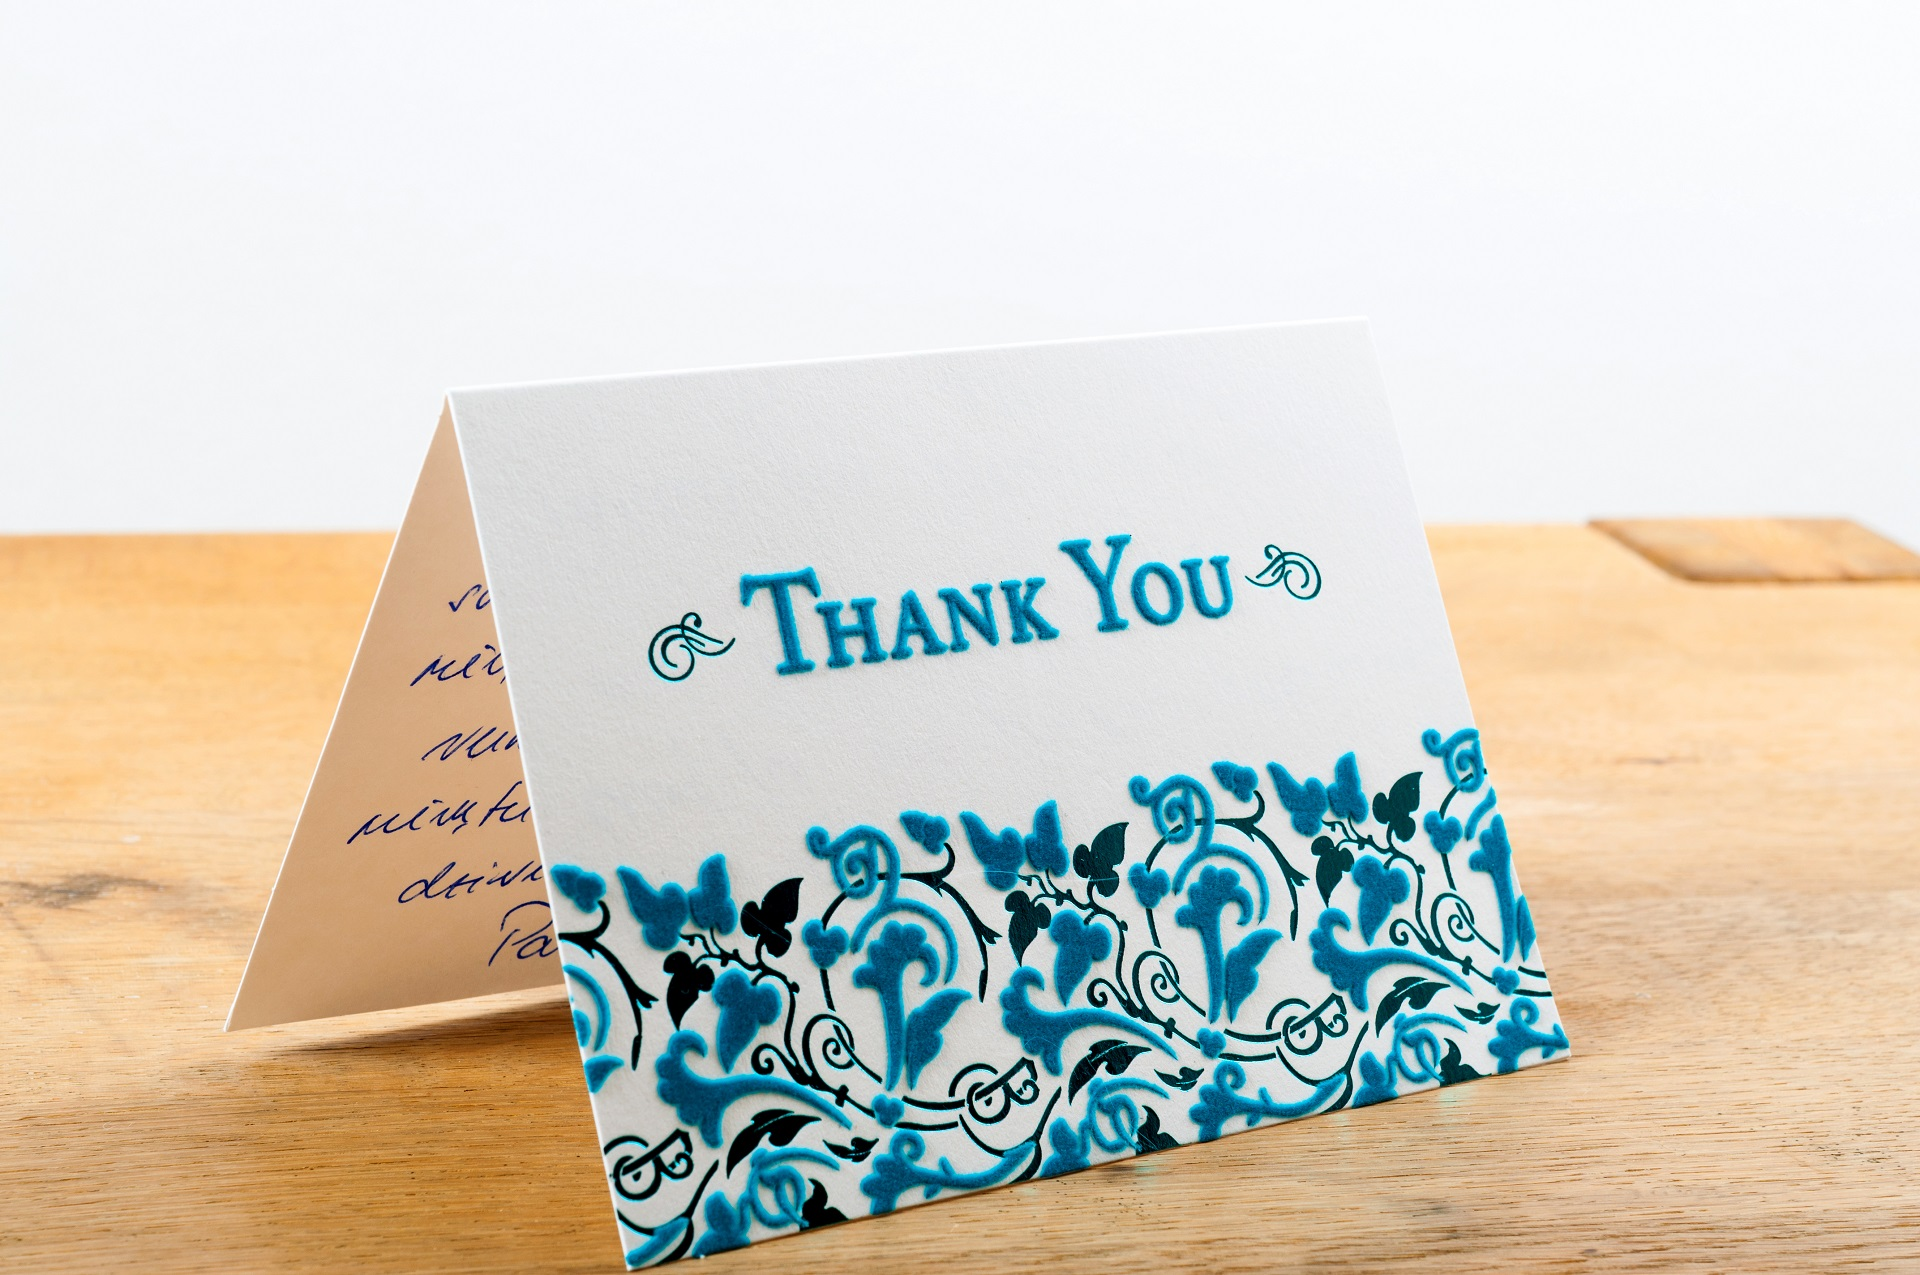 Add a thank-you note